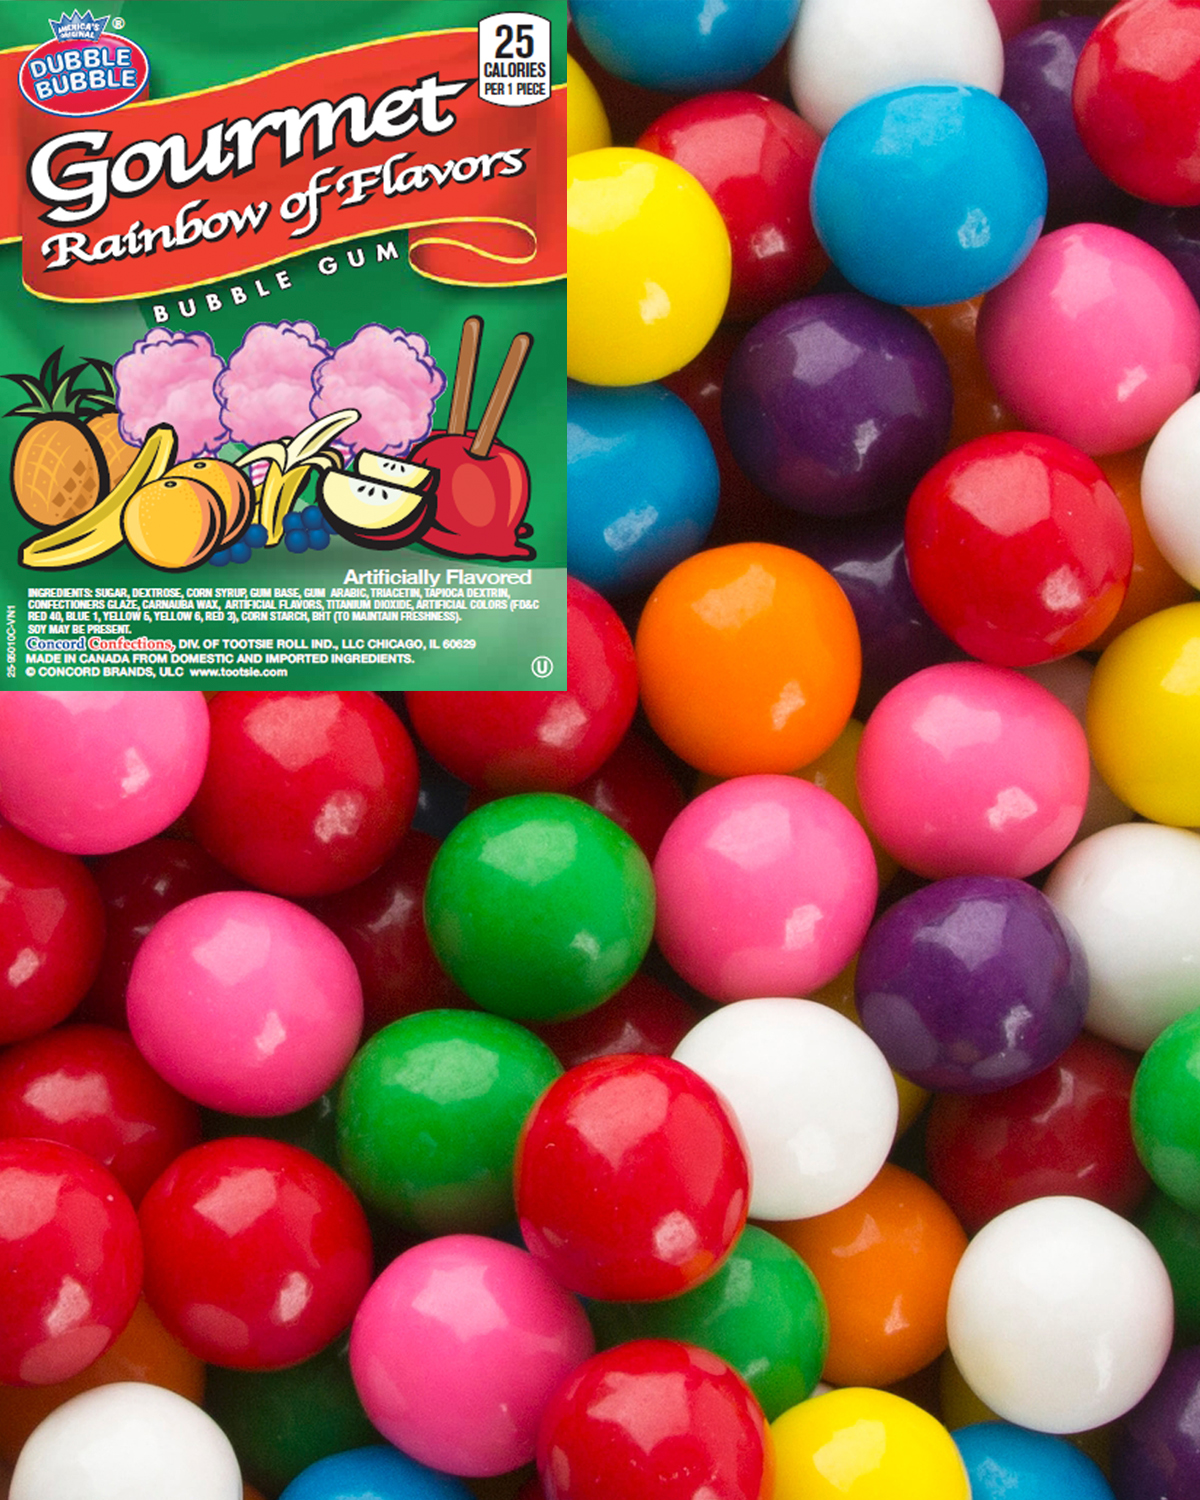 RAINBOW OF FLAVORS GUM